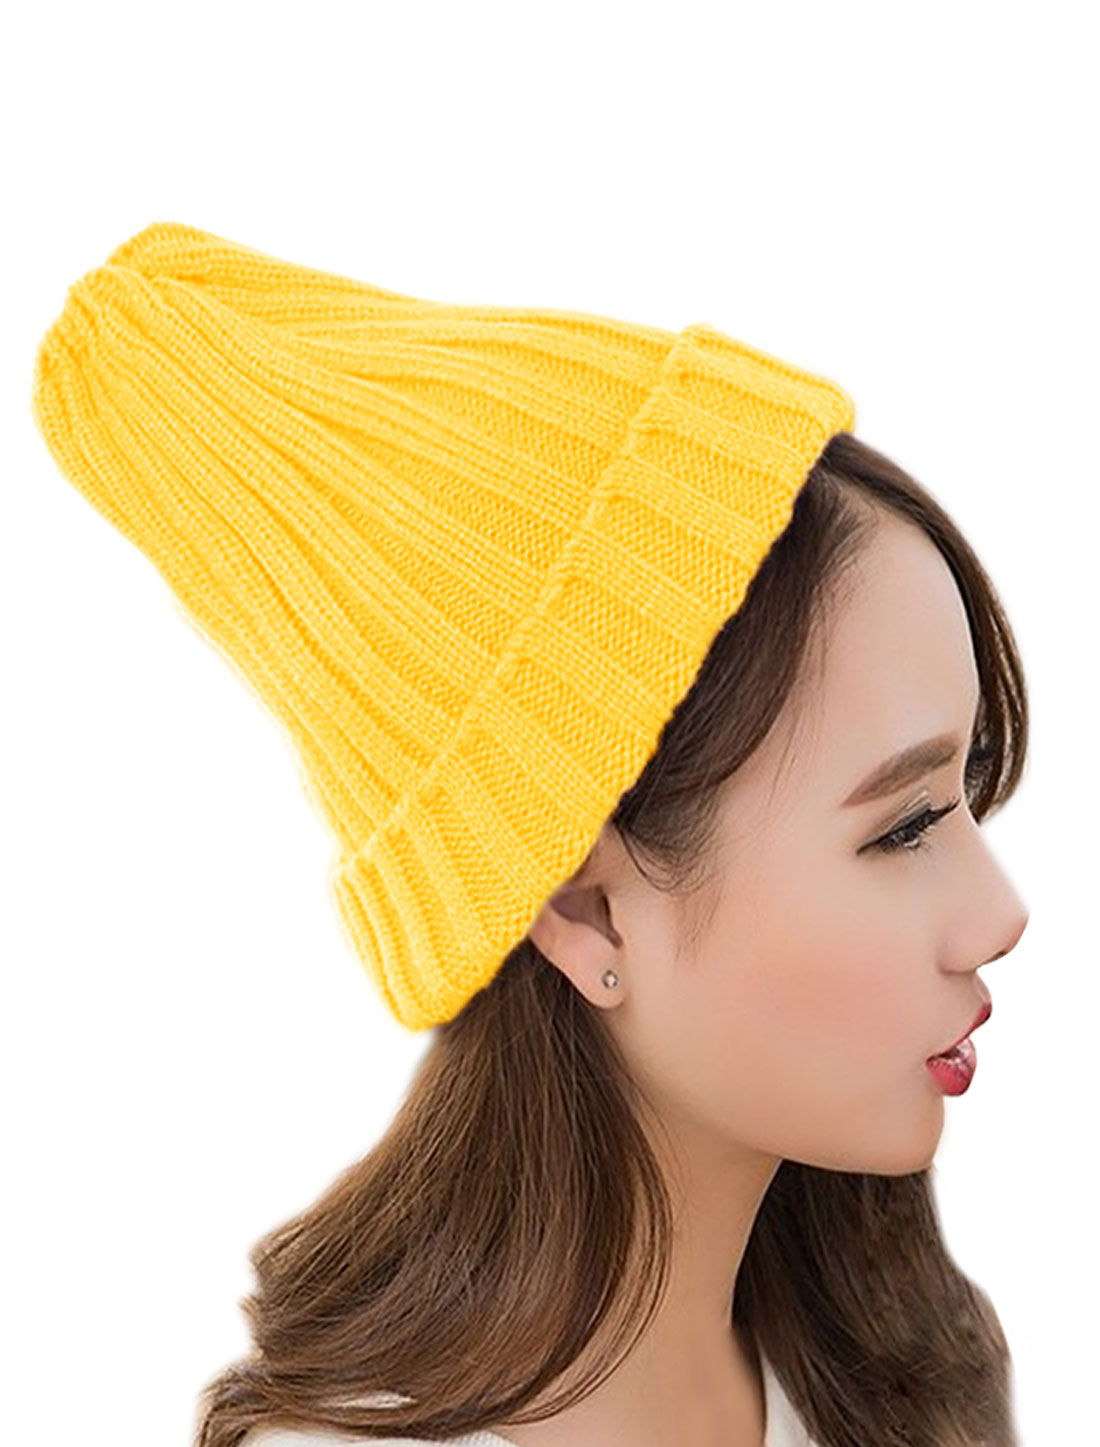 Unisex Ribbed Slouchy Casual Stretchy Knitted Cuffed Skull Cap Yellow